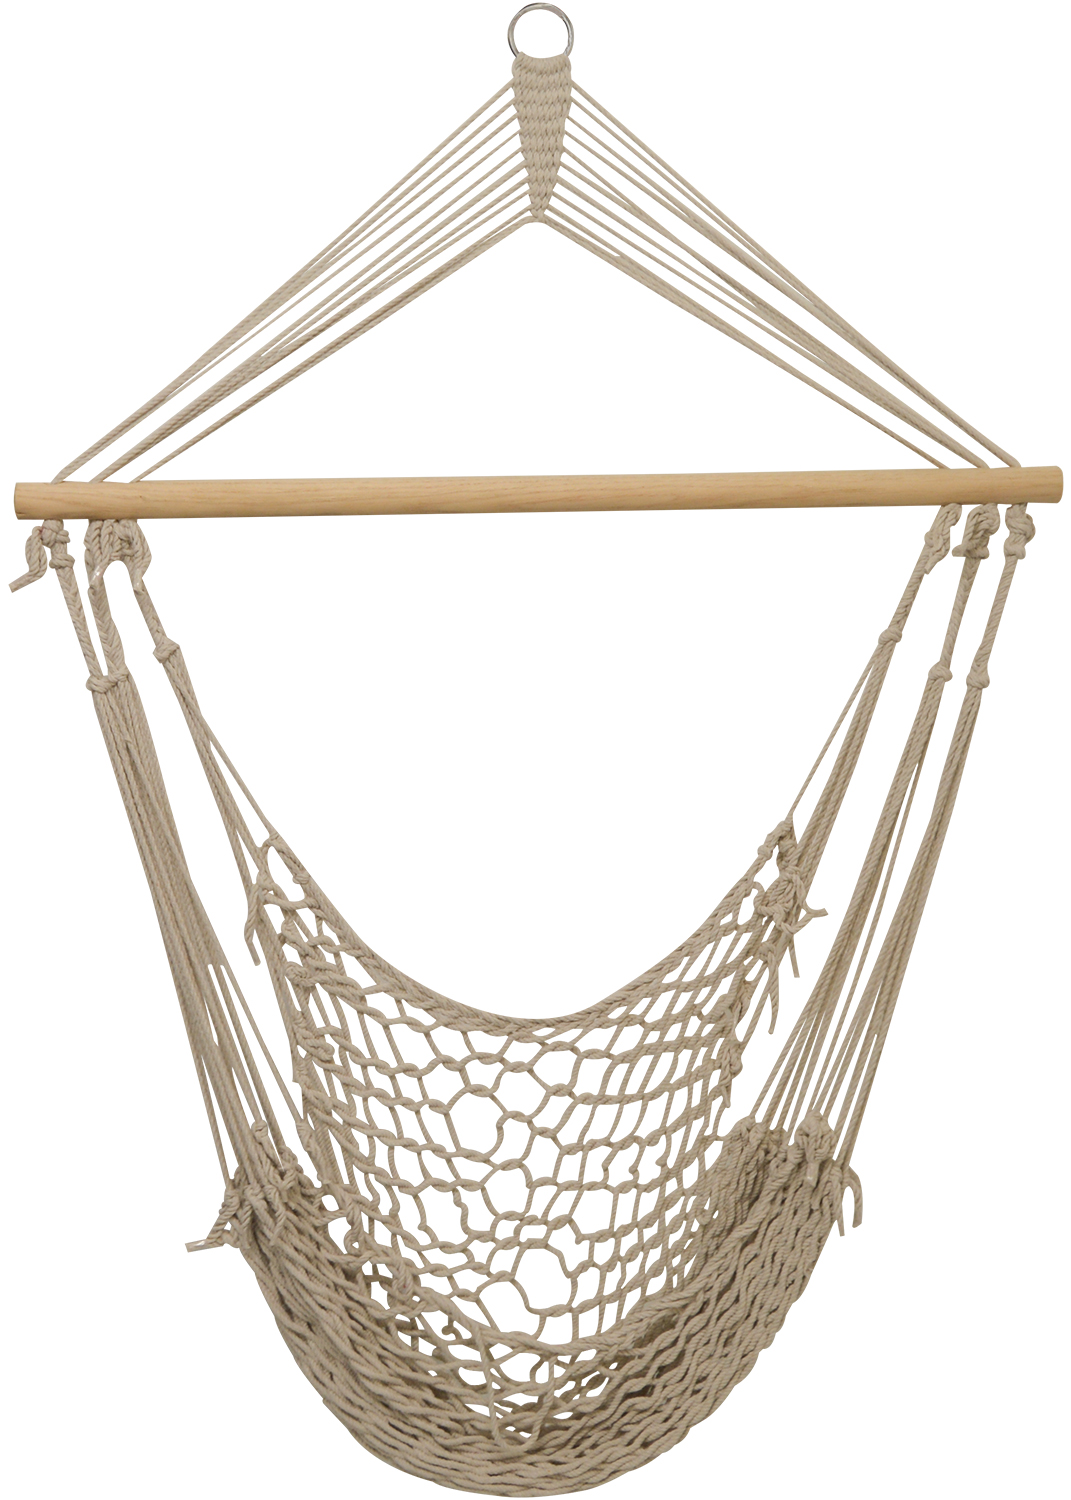 chair mayan reviews our hanging picks hammock buying guide best top